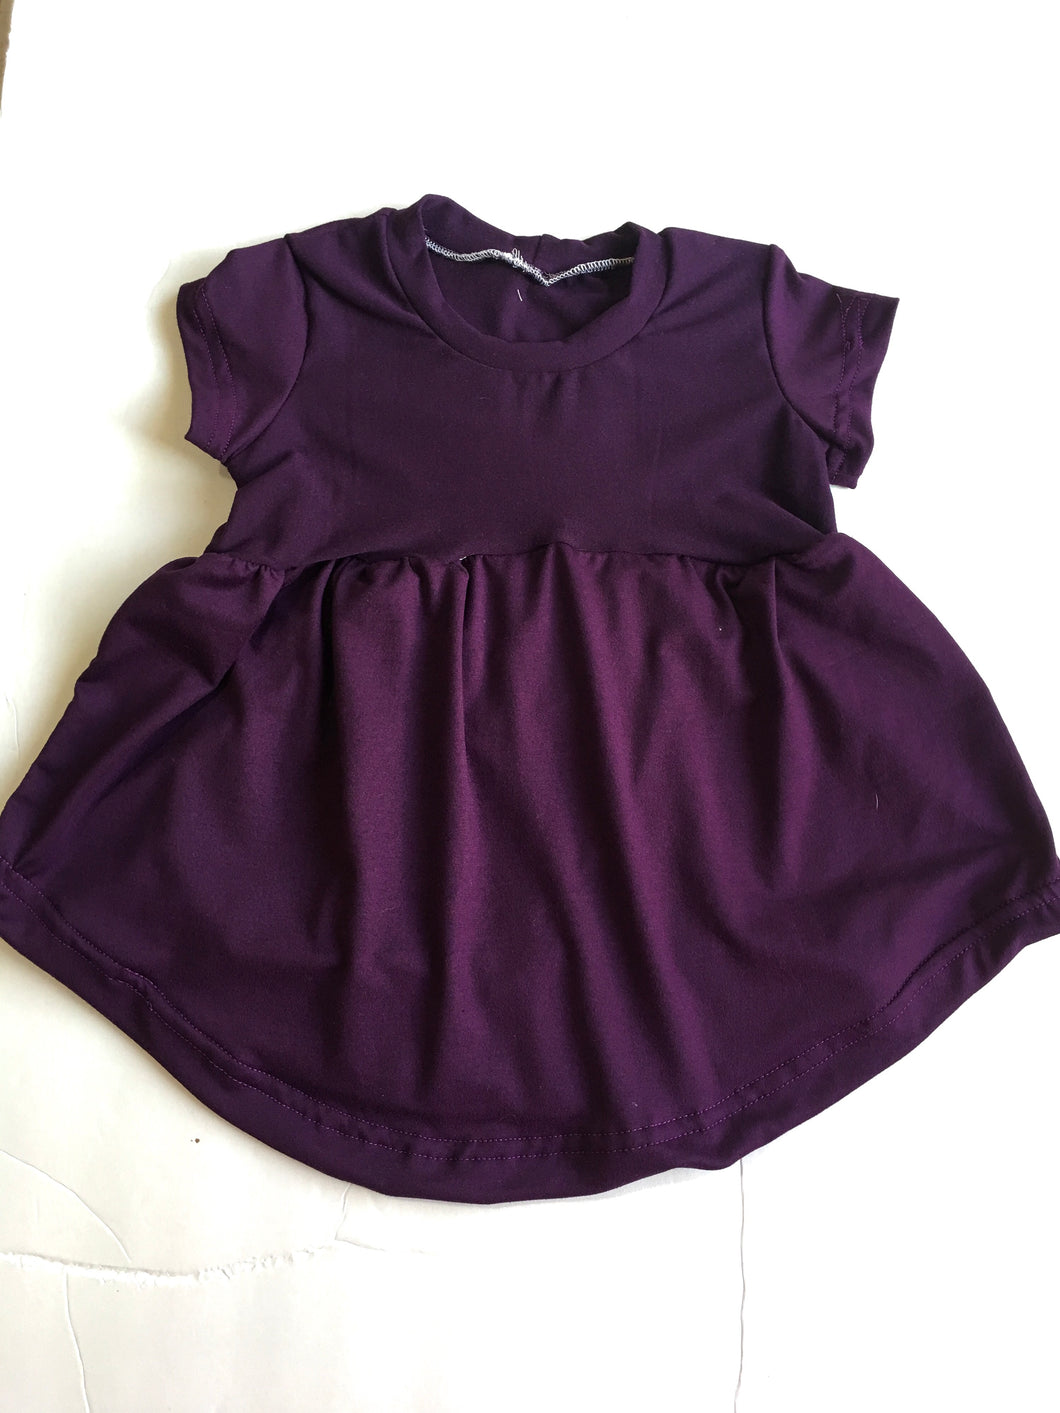 Eggplant purple Boho (Epilepsy Awareness) - SweetChildsBoutique